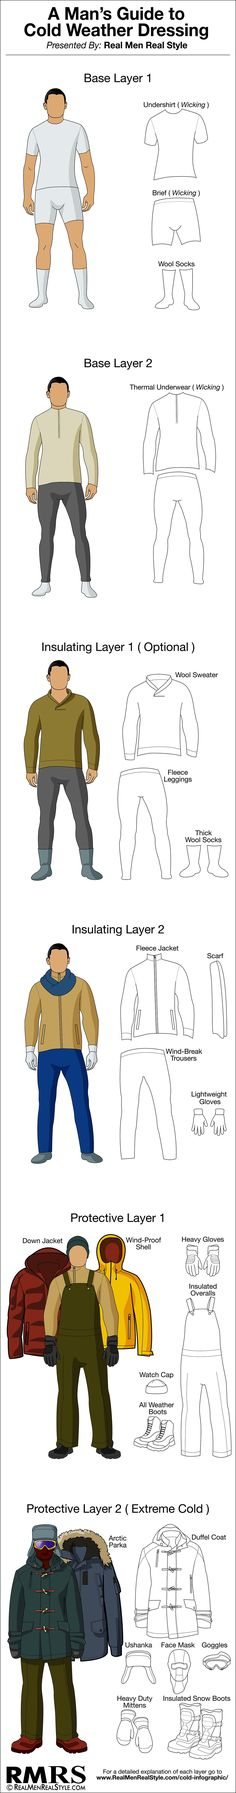 How to dress warm in freezing weather